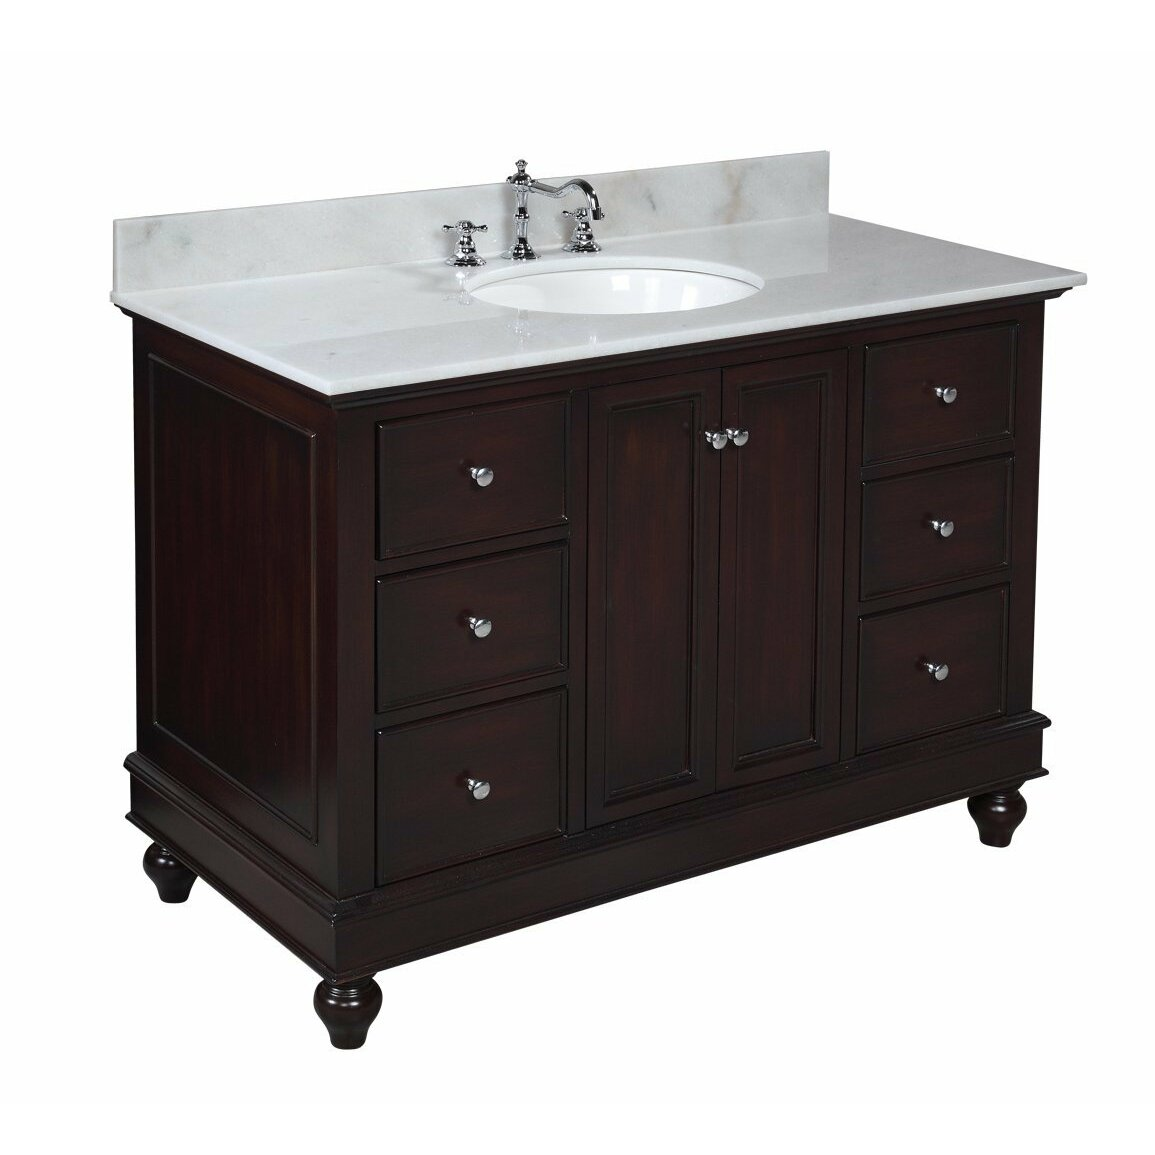 Kbc bella 48 single bathroom vanity set reviews wayfair - Wayfair furniture bathroom vanities ...